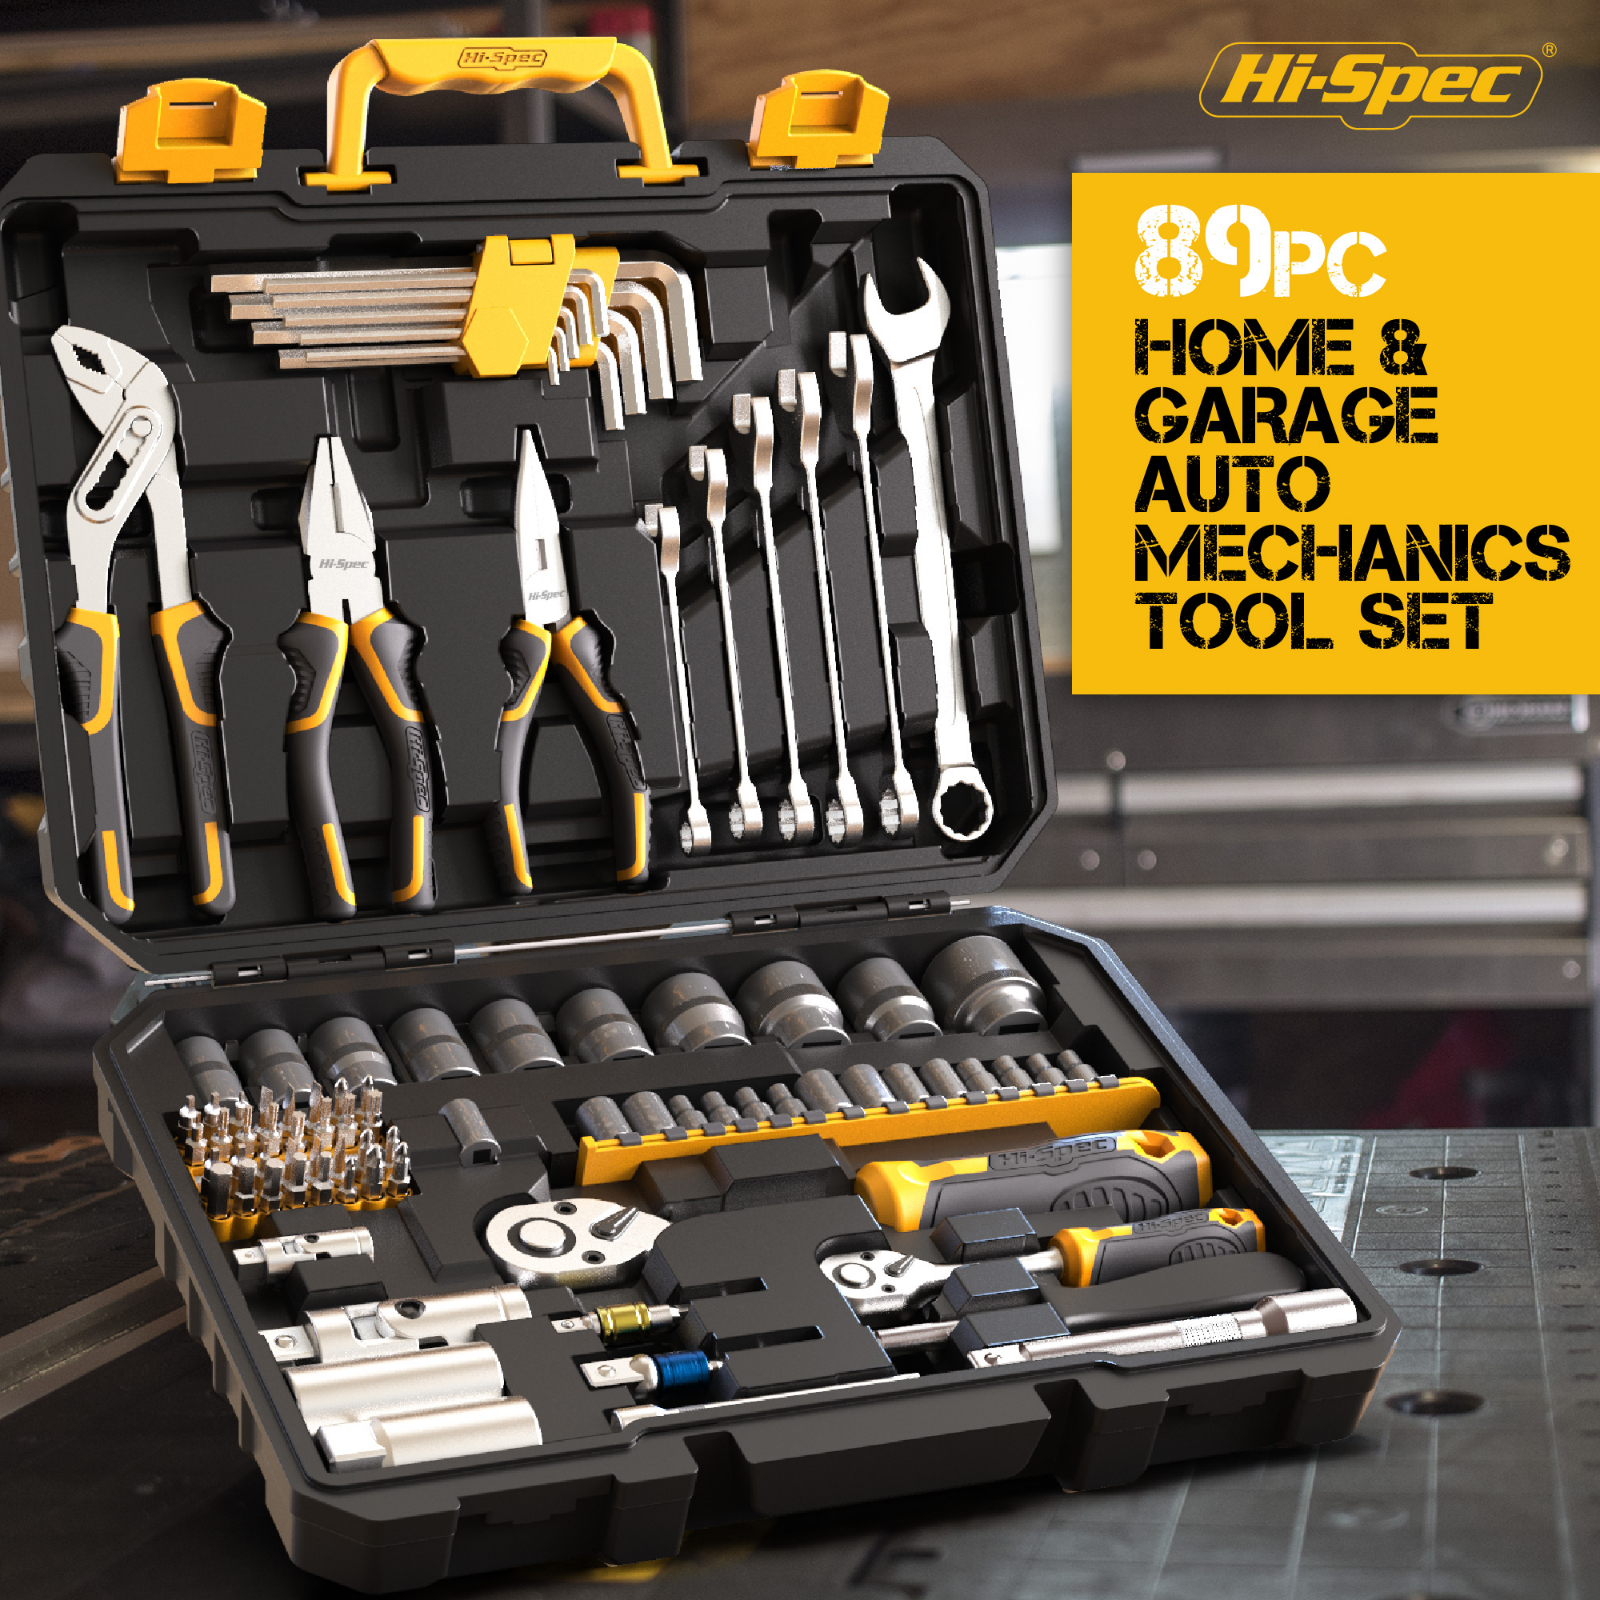 Hi-Spec 89pc Mechanic's Hand Tool Kit Set of Tools for Auto 1/2 1/4 Professional Socket Wrench Combination Tool Set with Toolbox